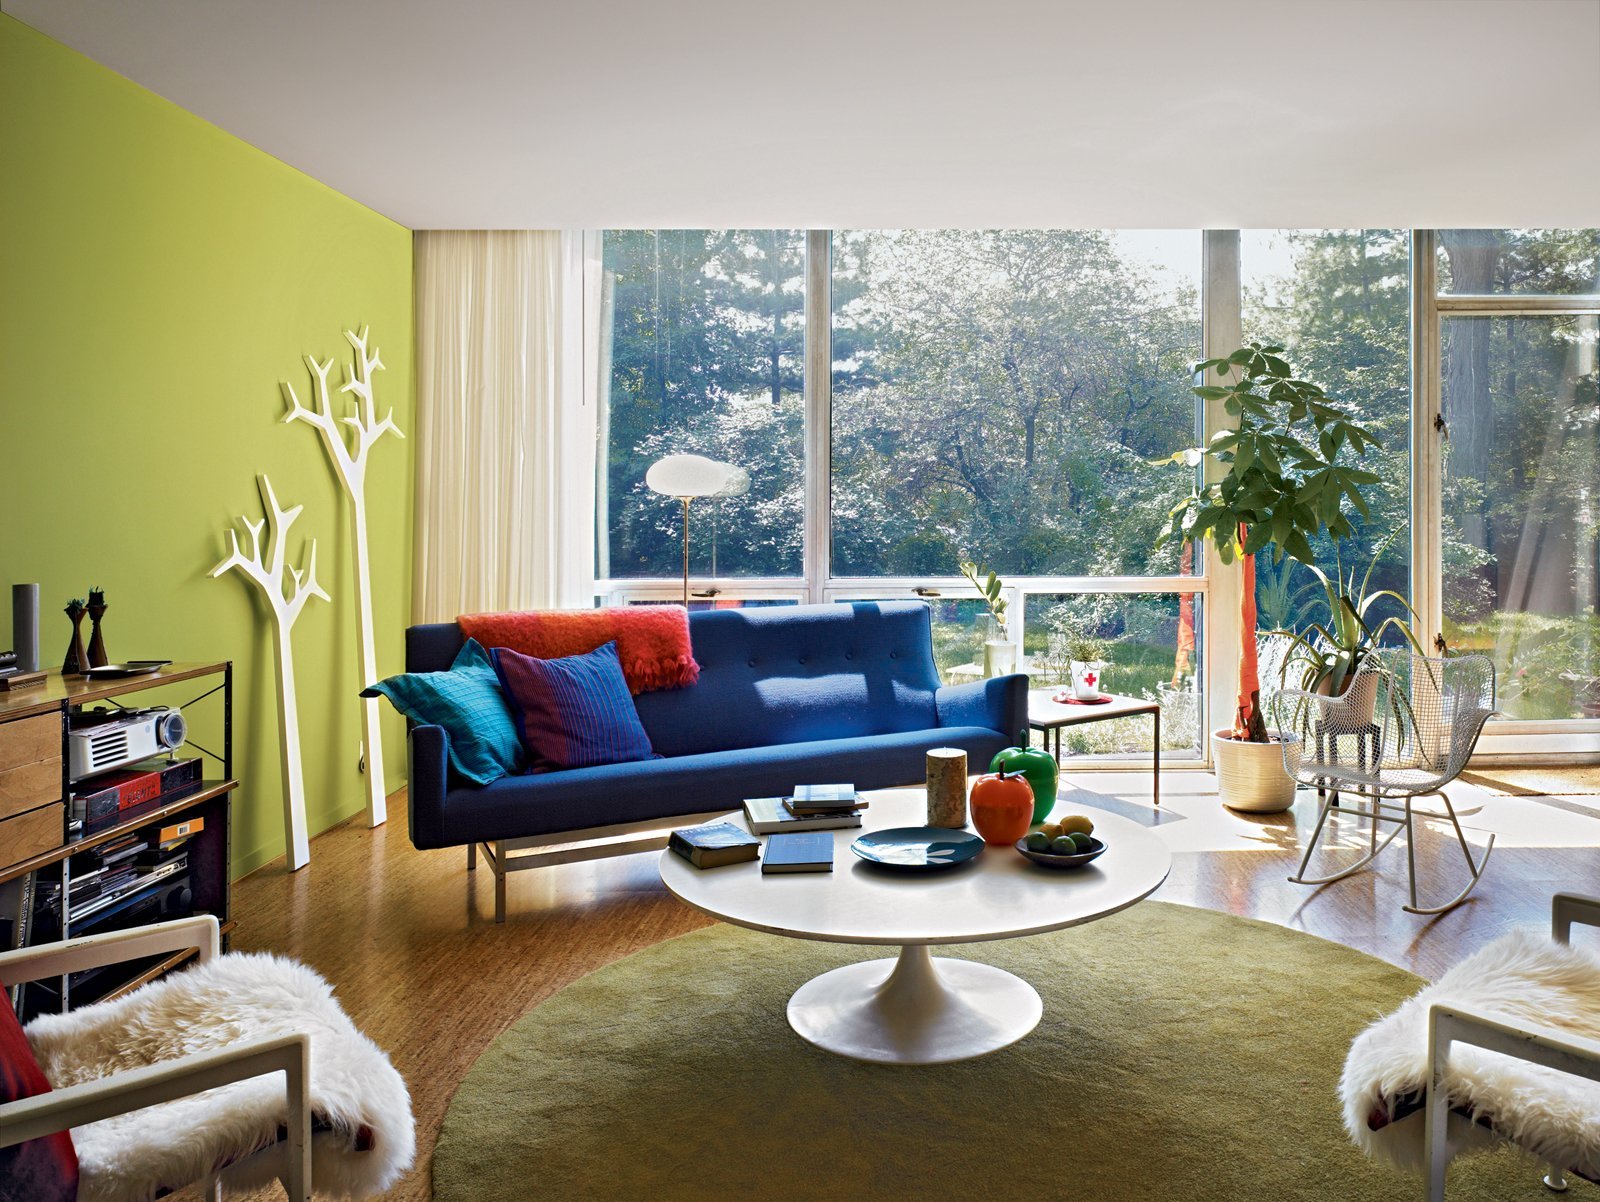 In the living room, a pair of Tree coat hangers by Michael Young and Katrin Petursdottir for Swedese contrast with the live foliage outside.  Midcentury Homes by Dwell from Mies van der Rohe, Lafayette Park